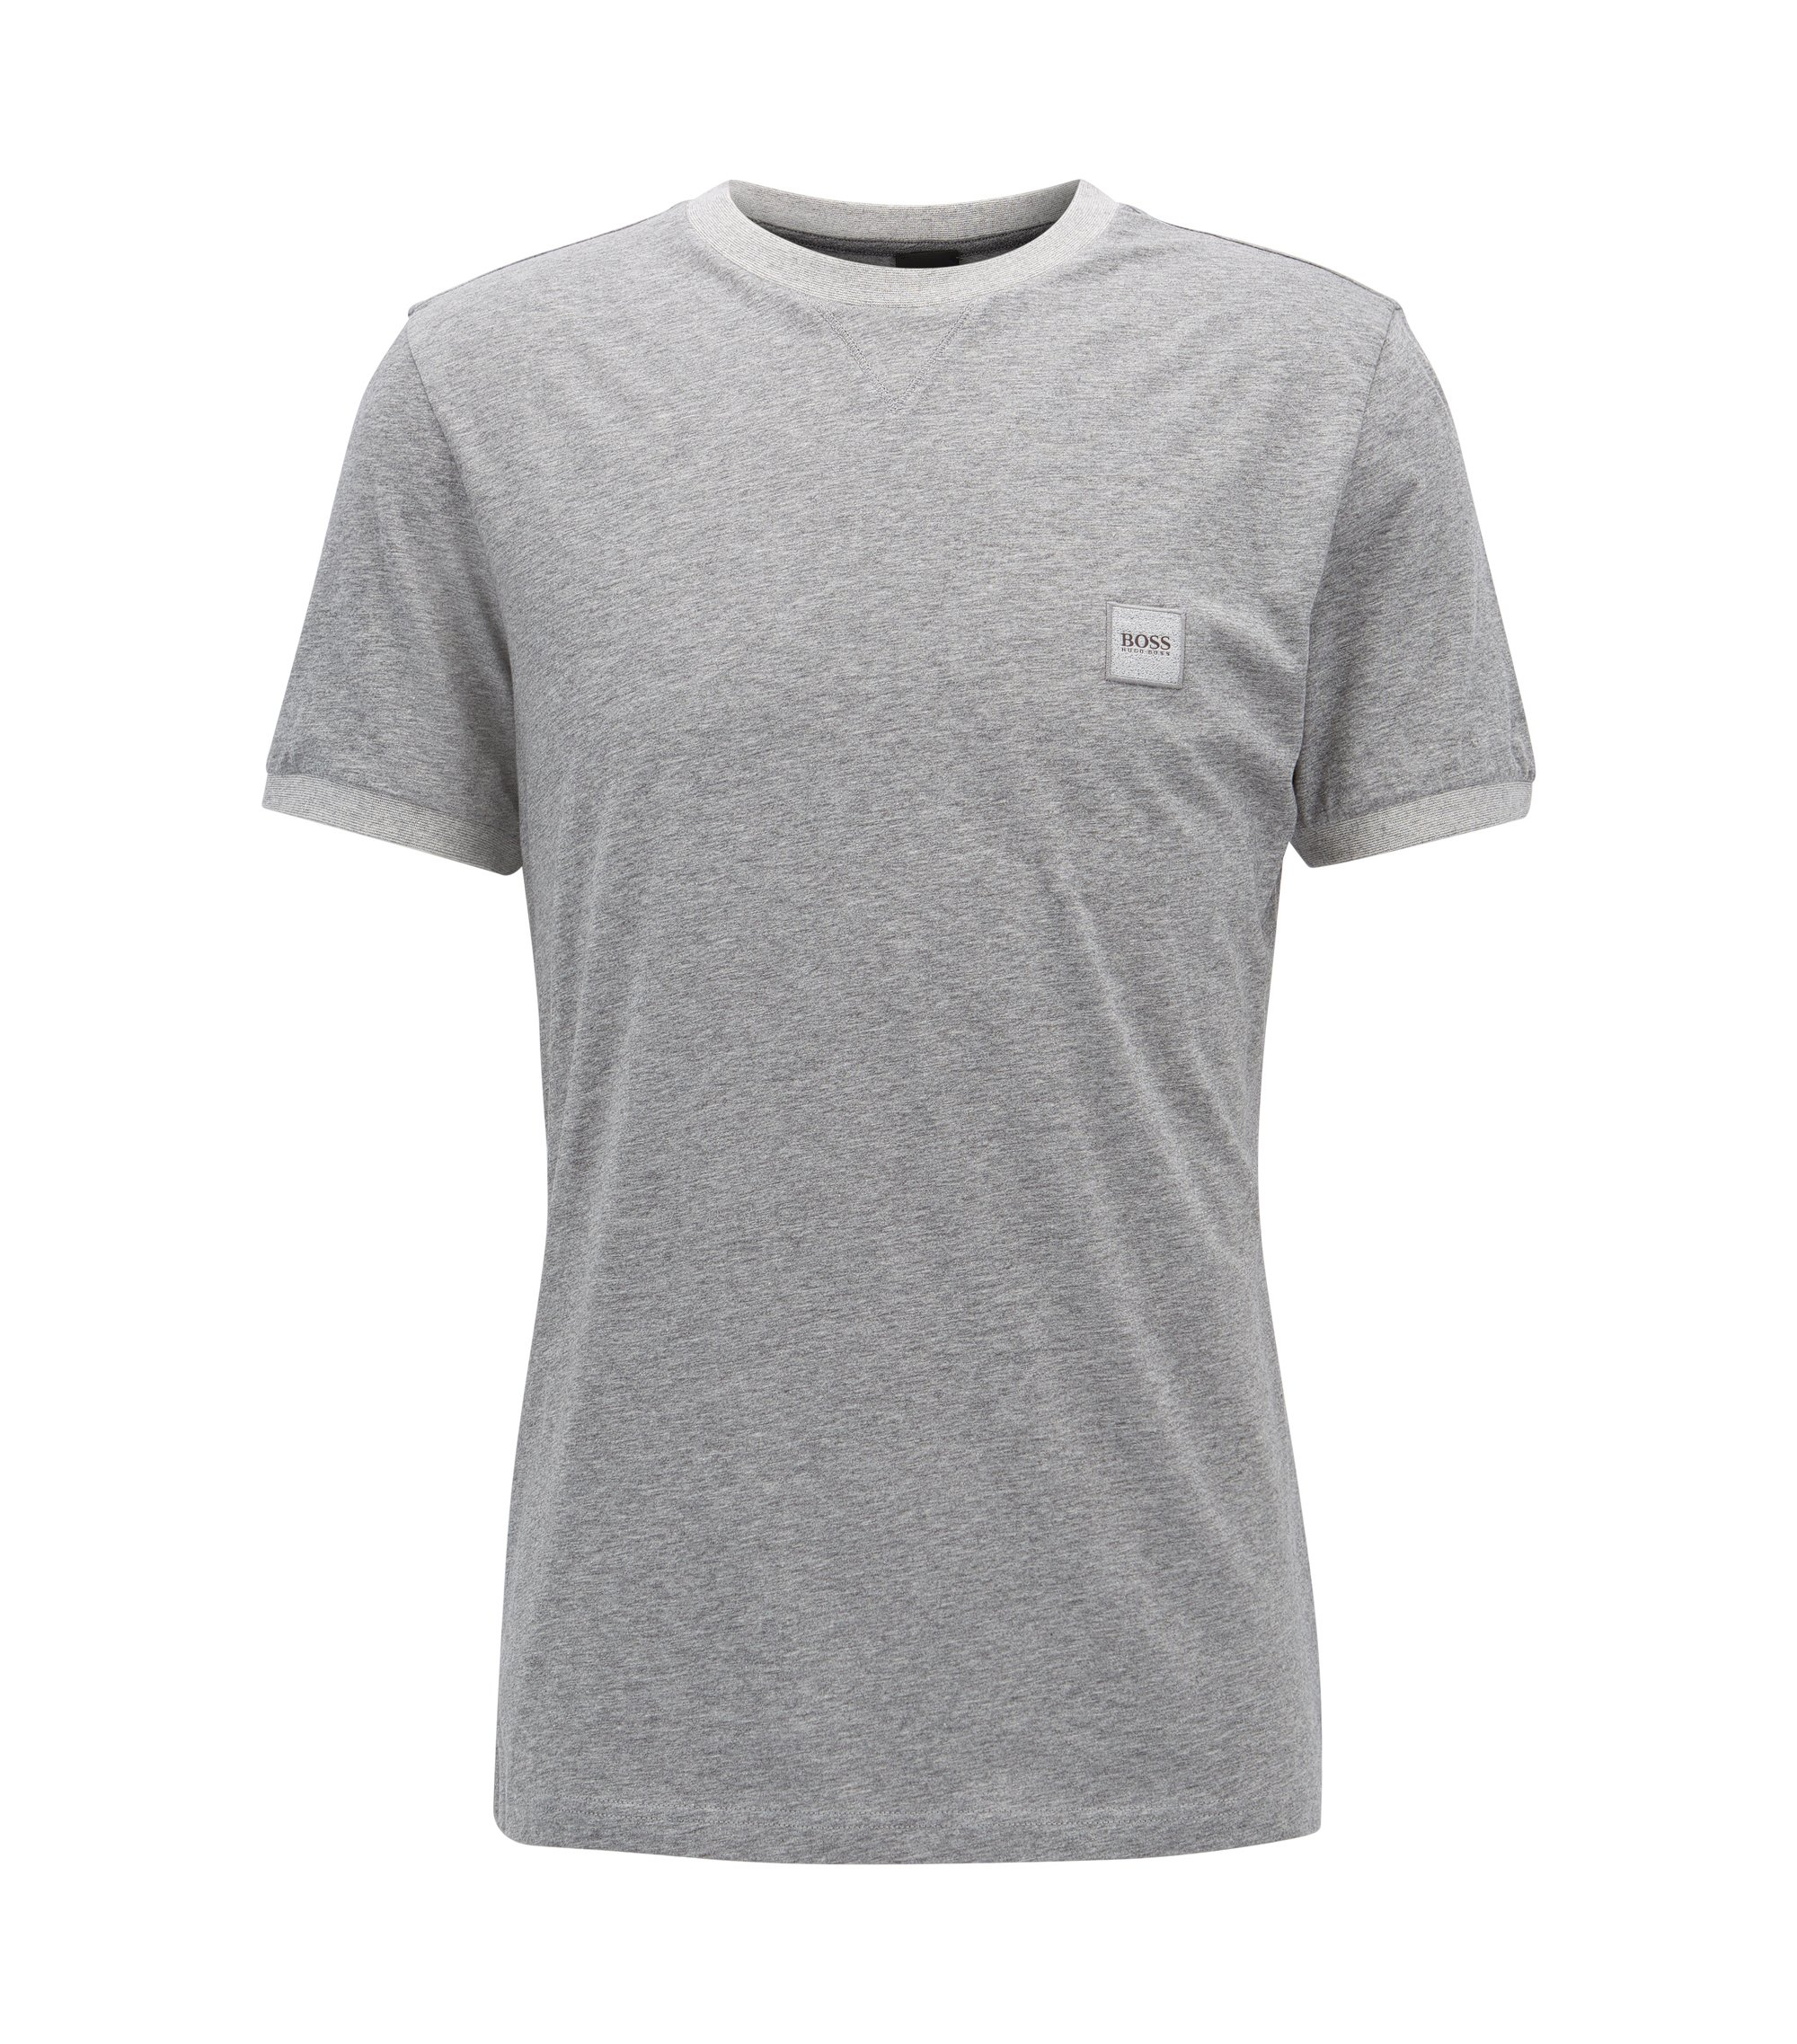 T-shirt Relaxed Fit en coton, Gris chiné